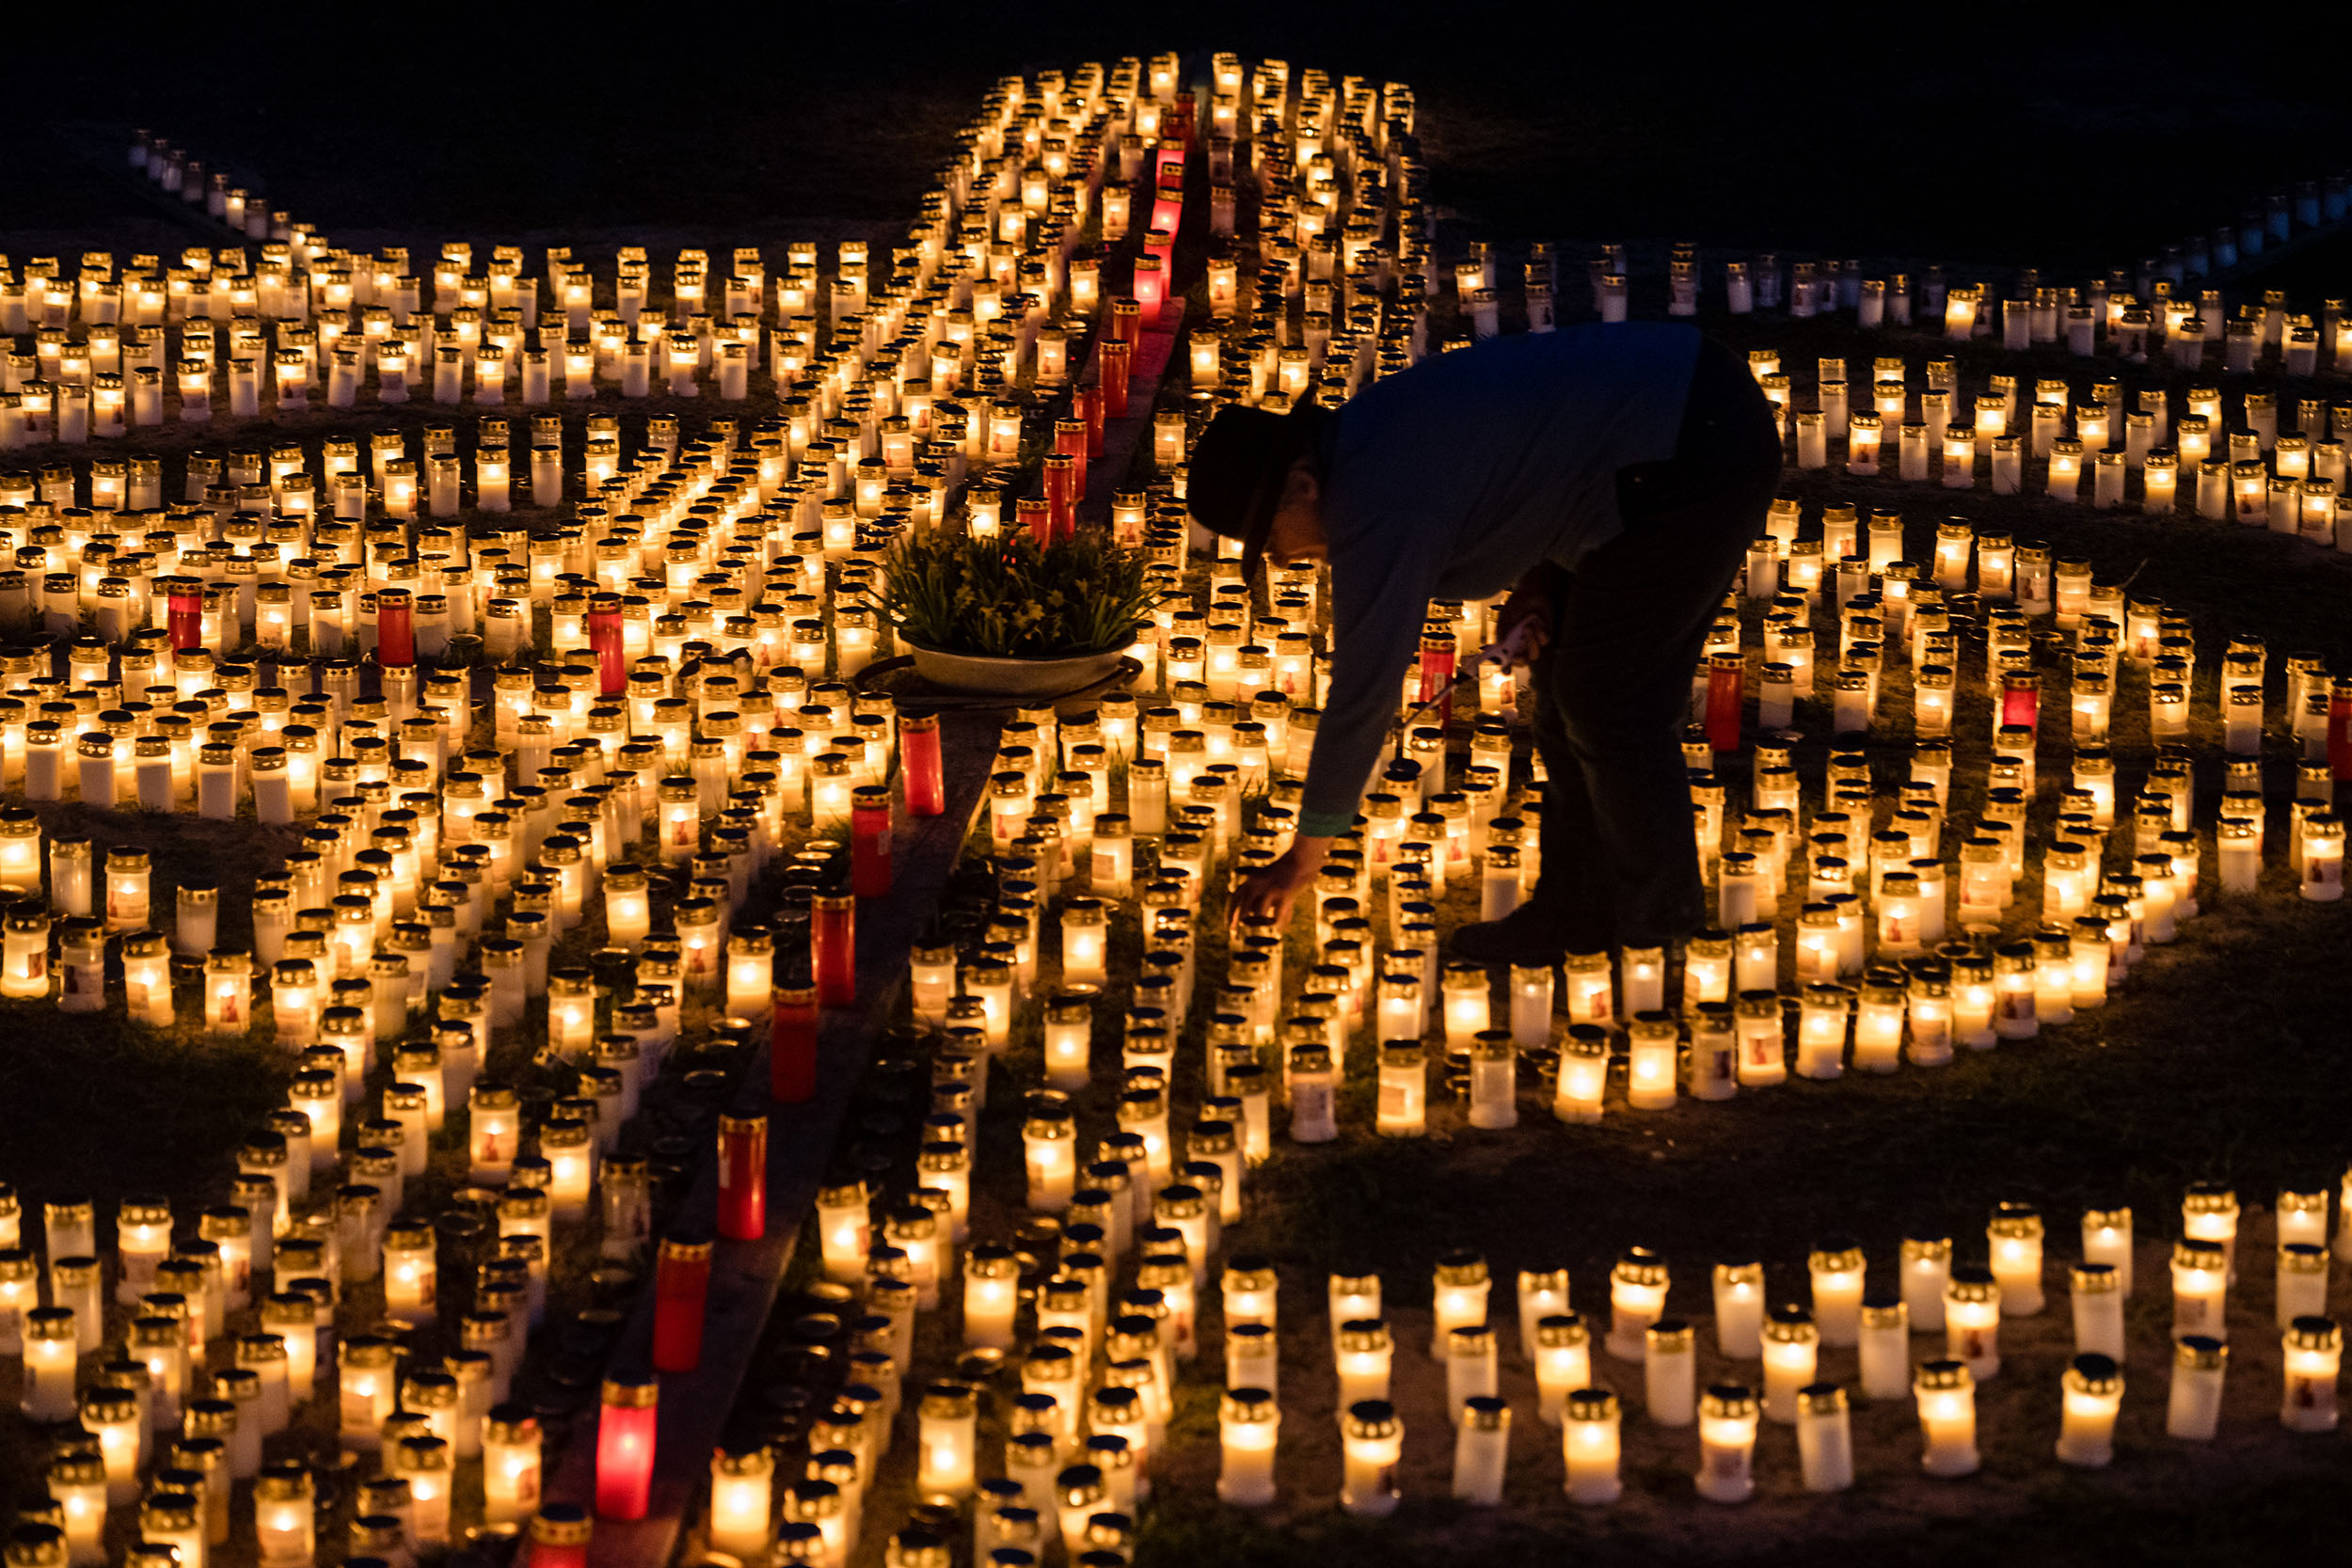 Gertrud Schop, 60, lights candles in the shape of a cross for Germany's deceased victims of Covid-19 on her property in Zella-Mehlis, Germany, on April 17.